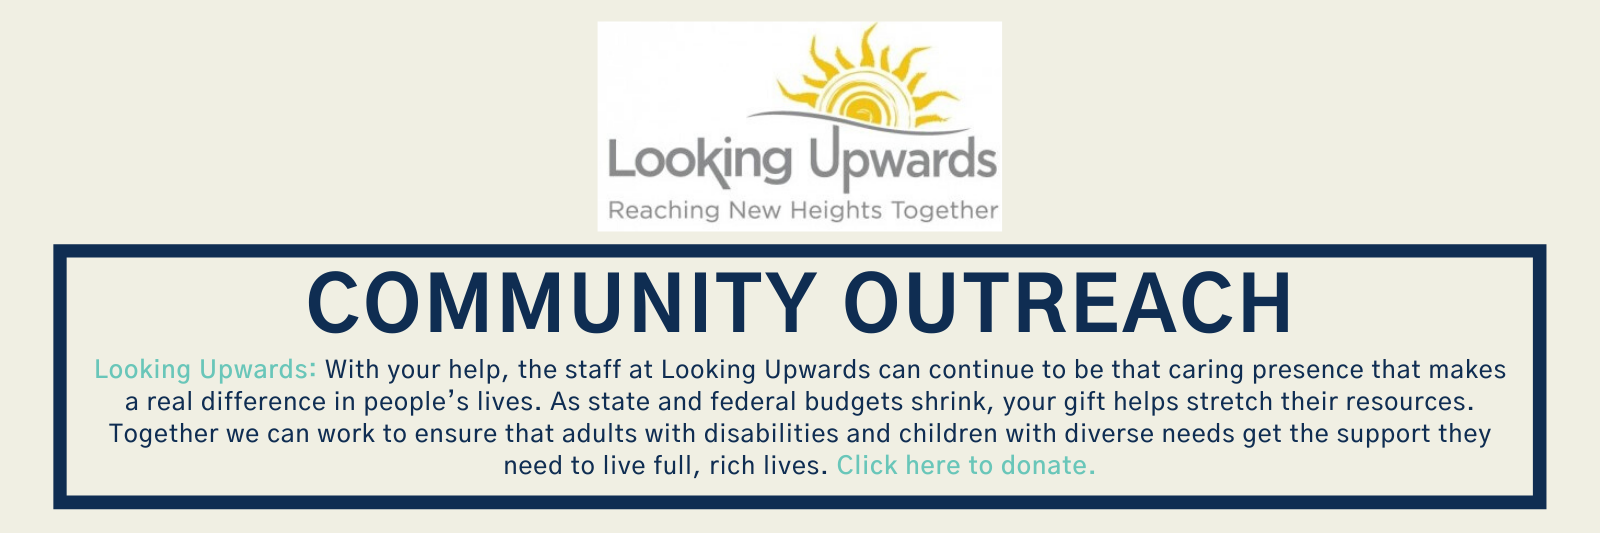 Community-Outreach---Looking-Upwards.png